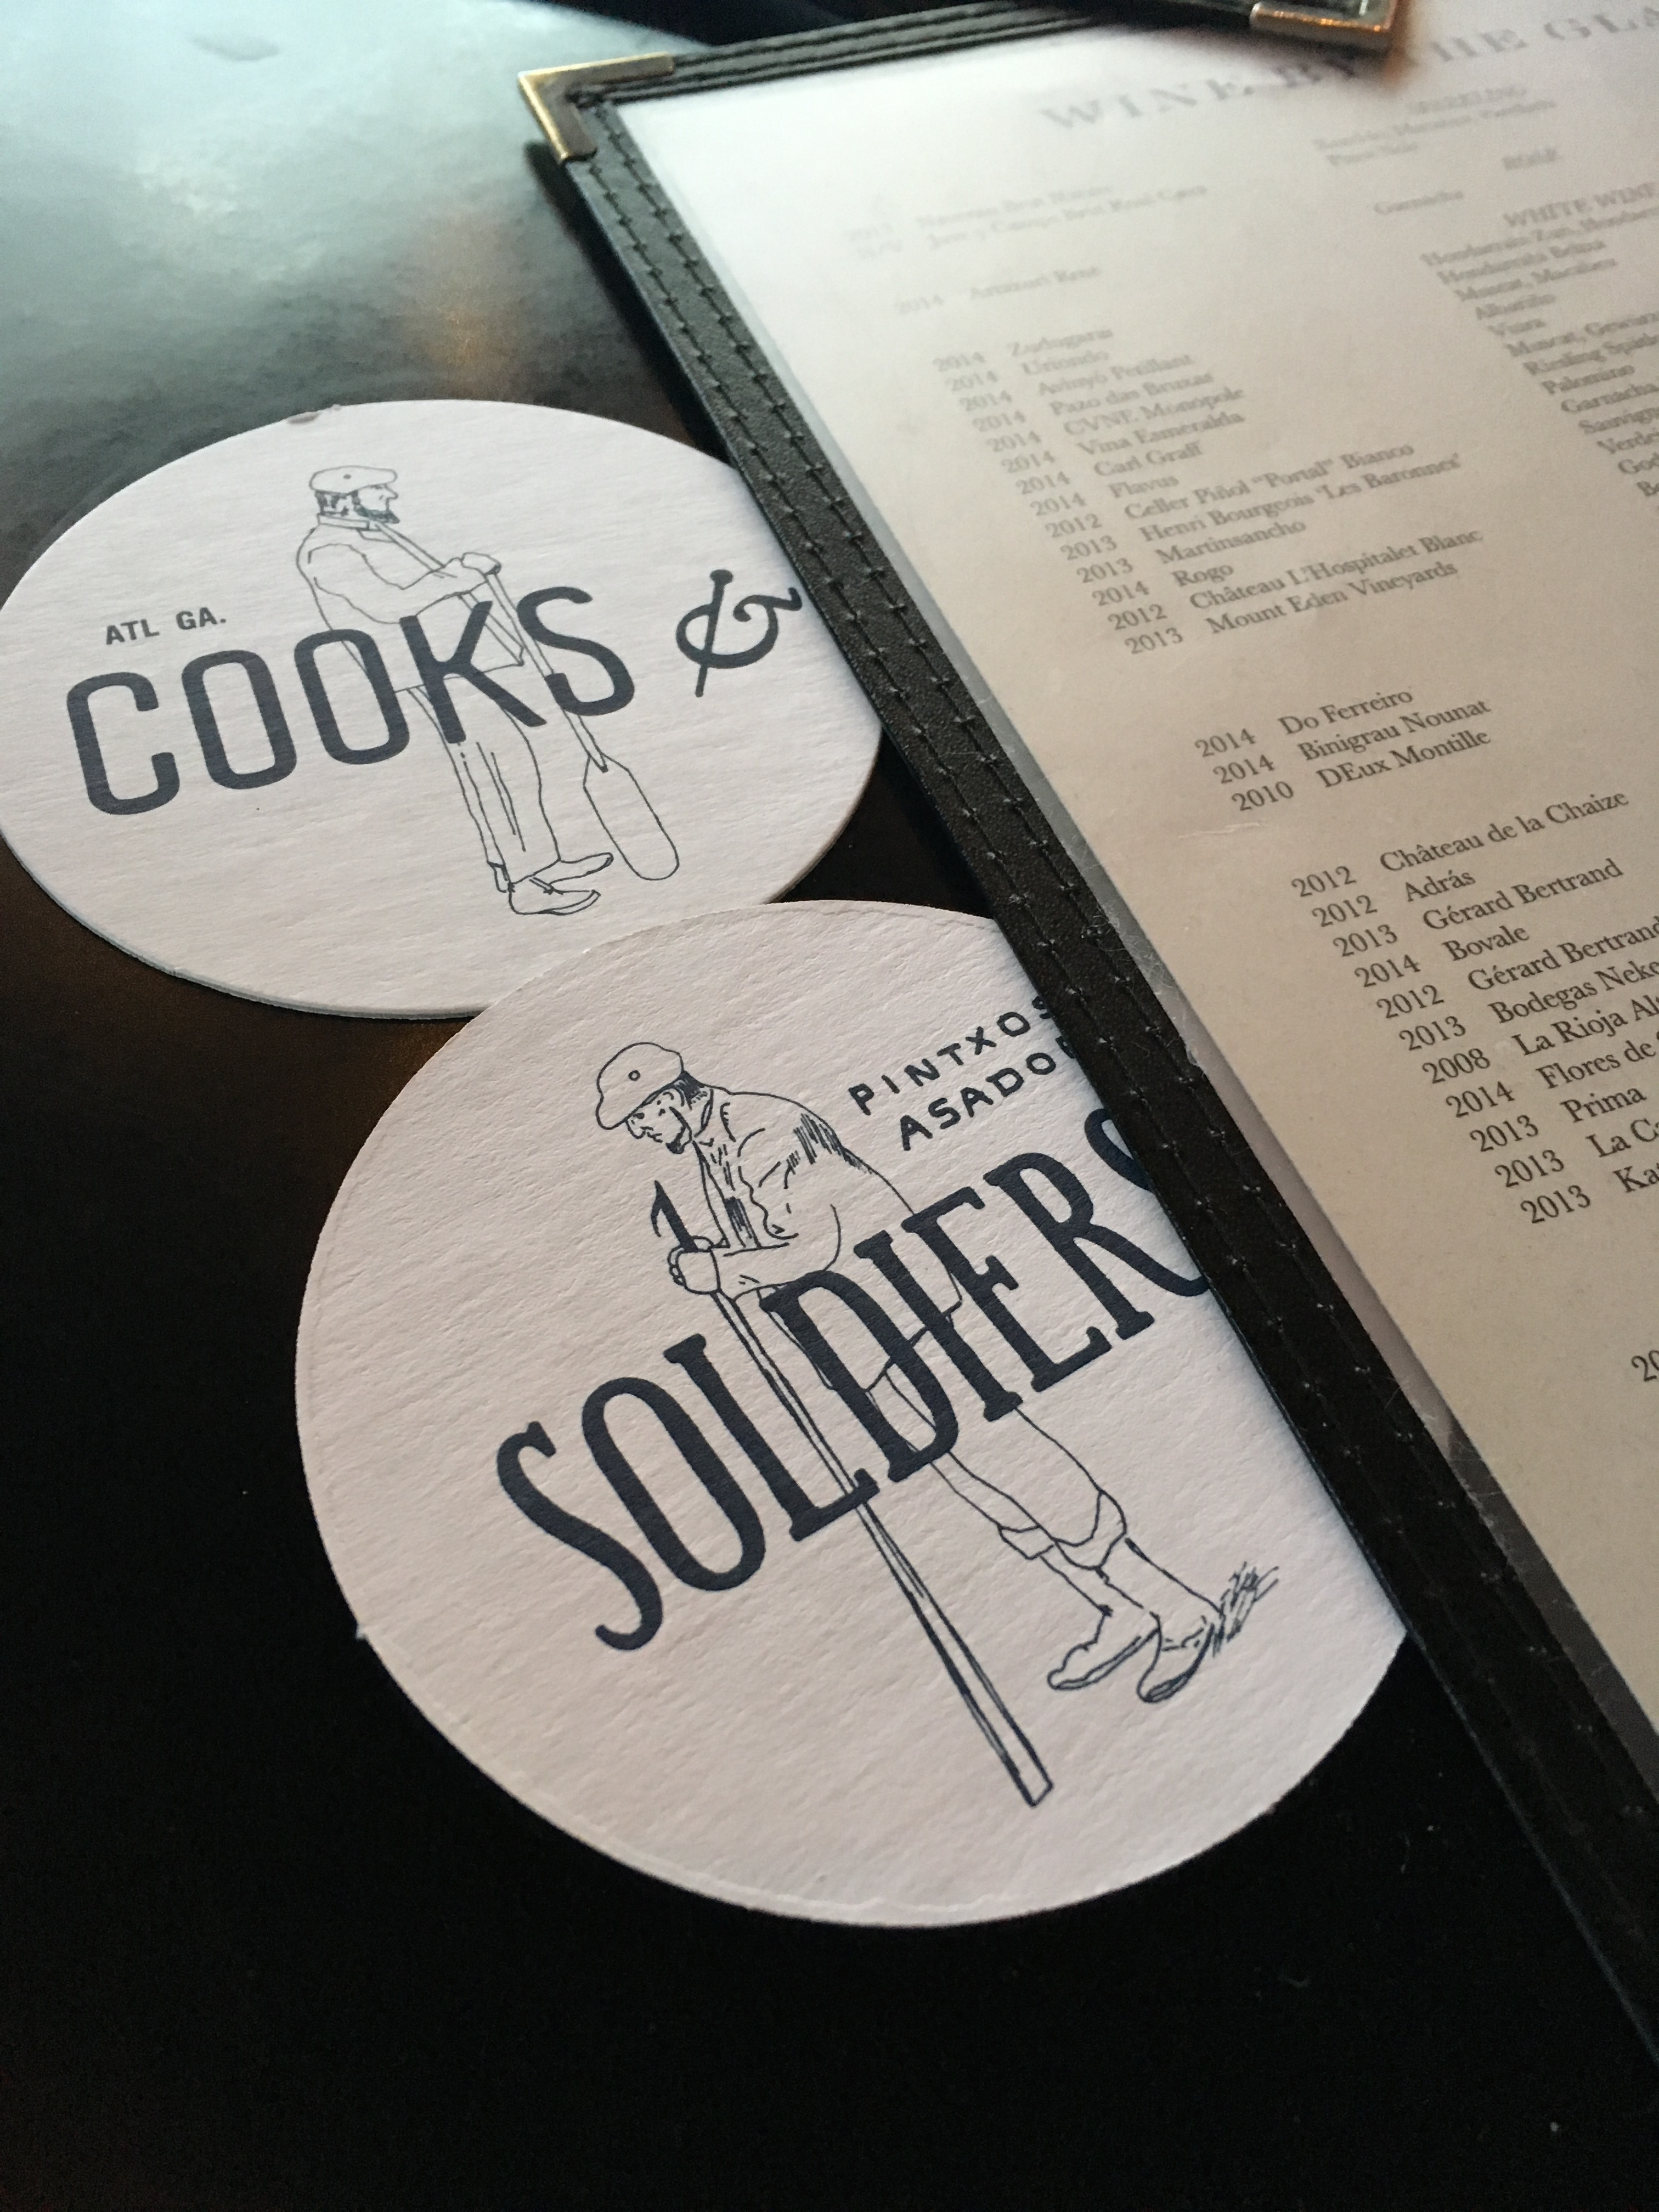 Out and About @ Cooks + Soldiers